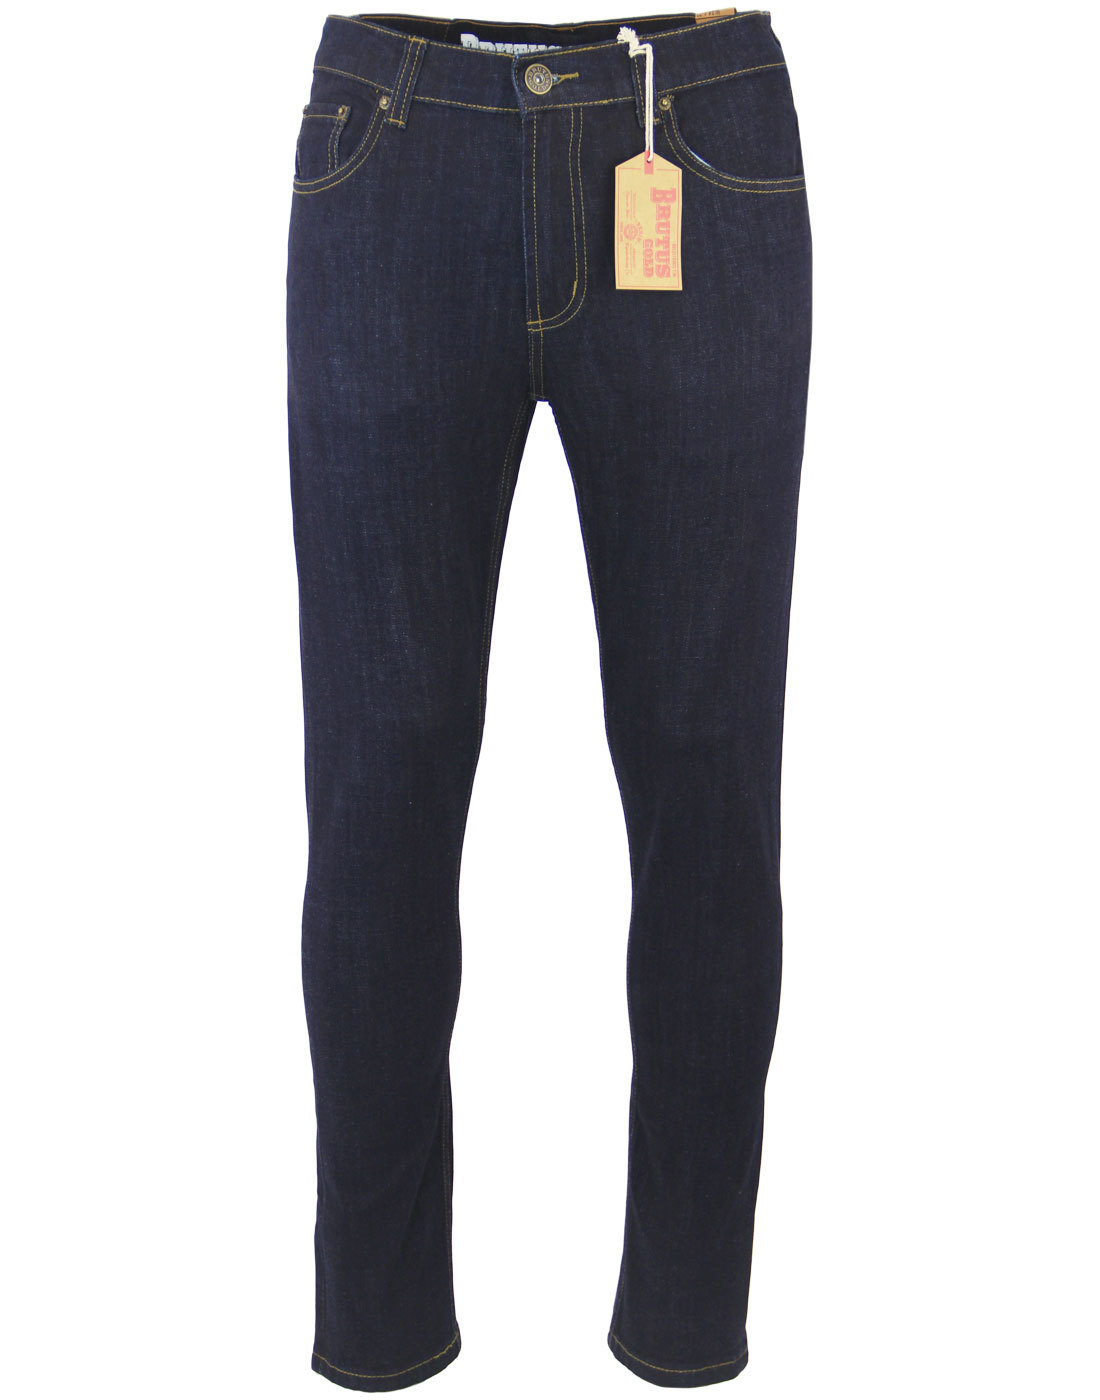 BRUTUS GOLD Retro Mod Slim Stretch Denim Jeans